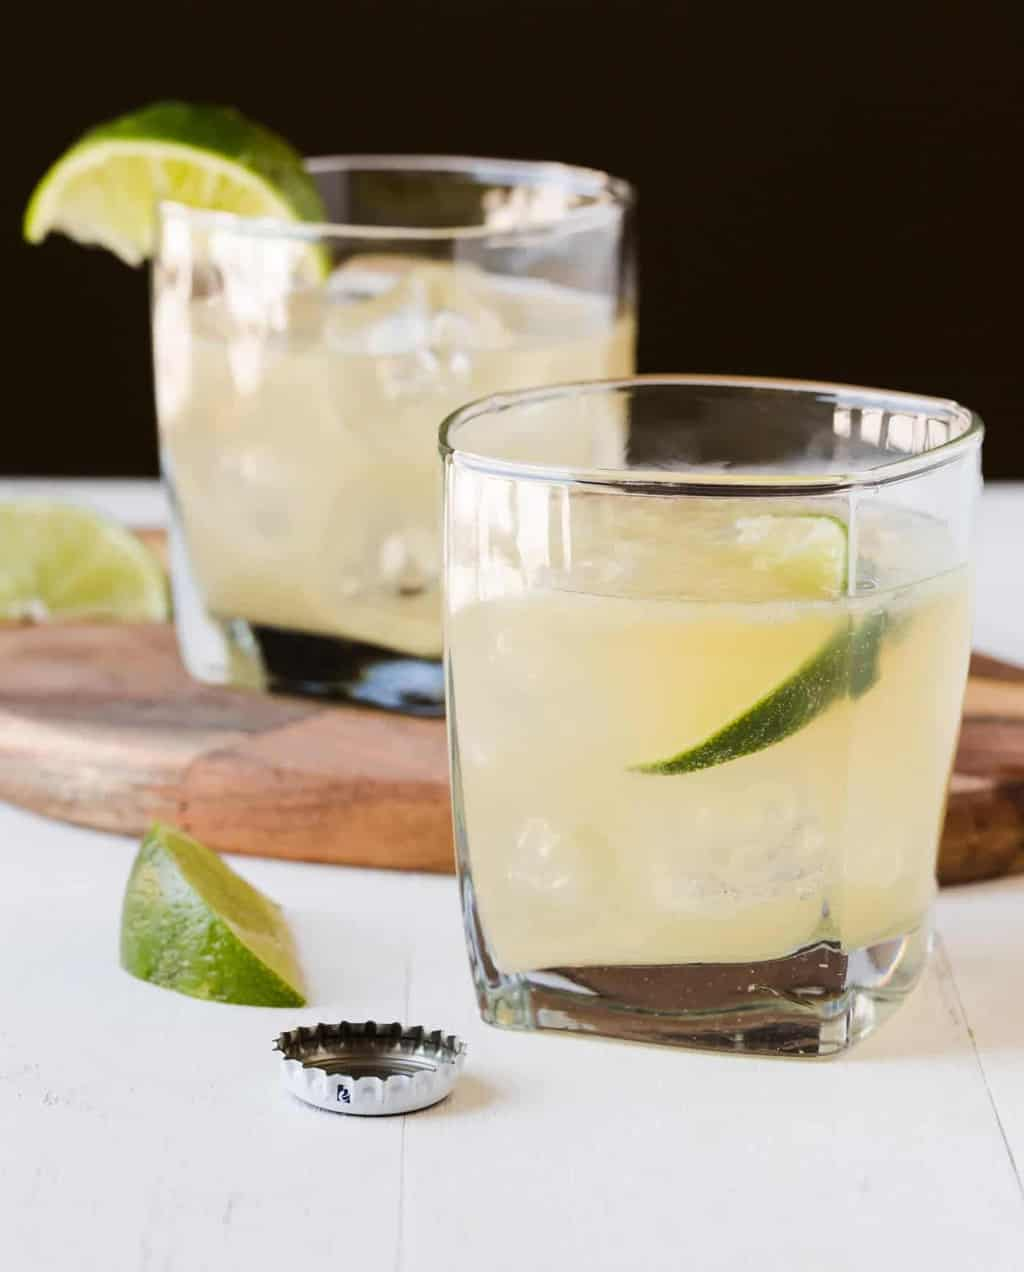 Beer in a margarita? You bet! With only 3 ingredients, this recipe for Beer Margaritas tastes better than any bottled mix. Great for parties!